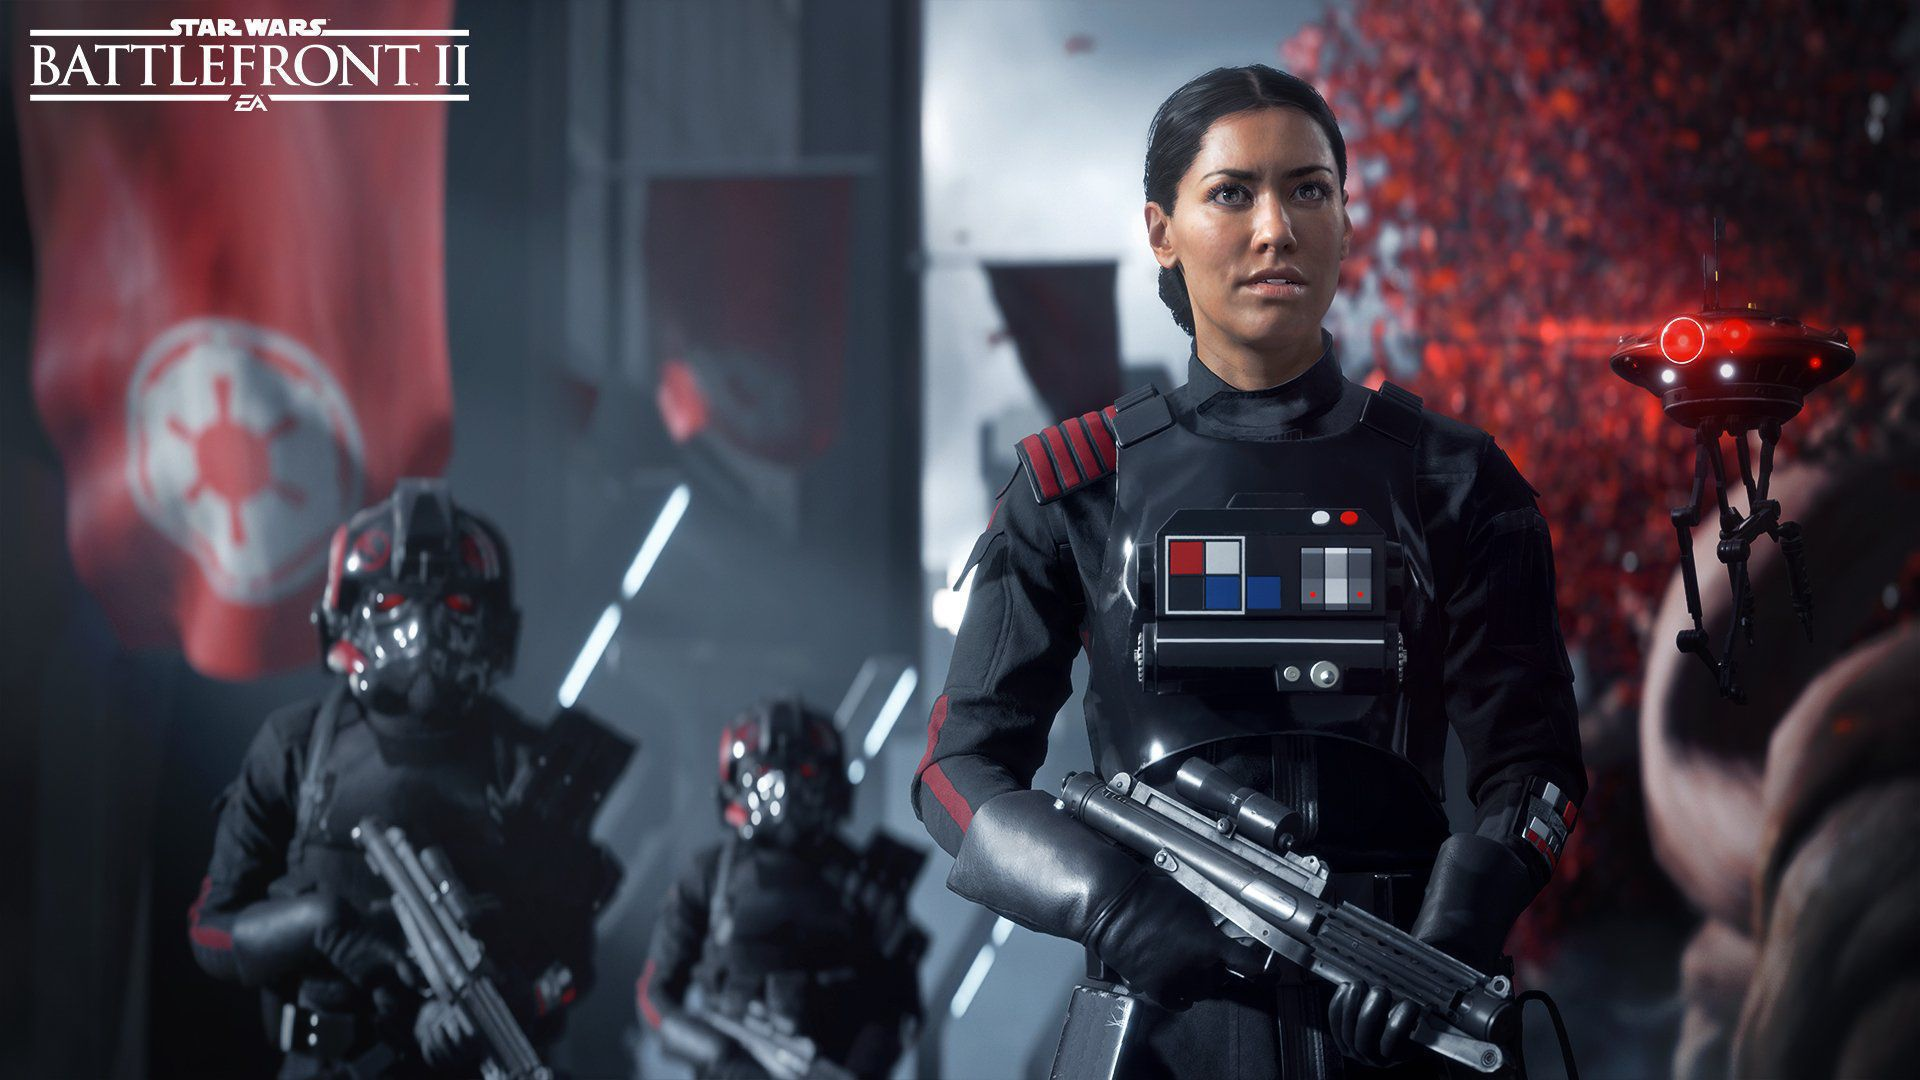 Star Wars Battlefront 2 High Quality Wallpapers